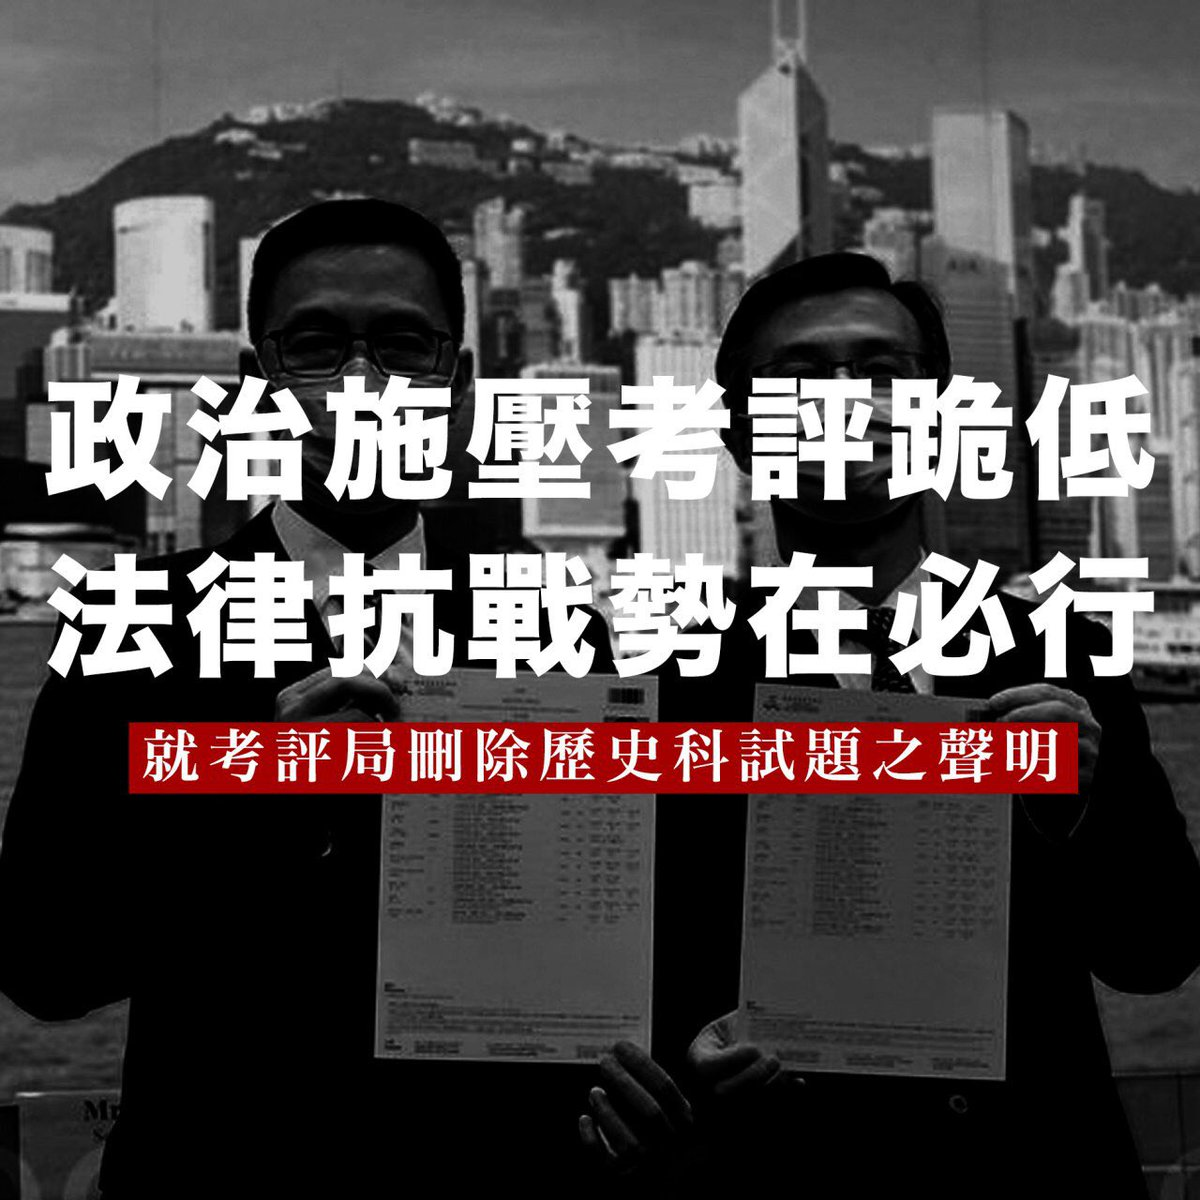 Secondary students say they'll file application as early as next week for judicial review of HKEAA's decision under #HK govt pressure to invalidate history exam question on China-Japan relationship. They expect intrusions in education to get worse under 'national security' laws. pic.twitter.com/9ogZ7yoFAY